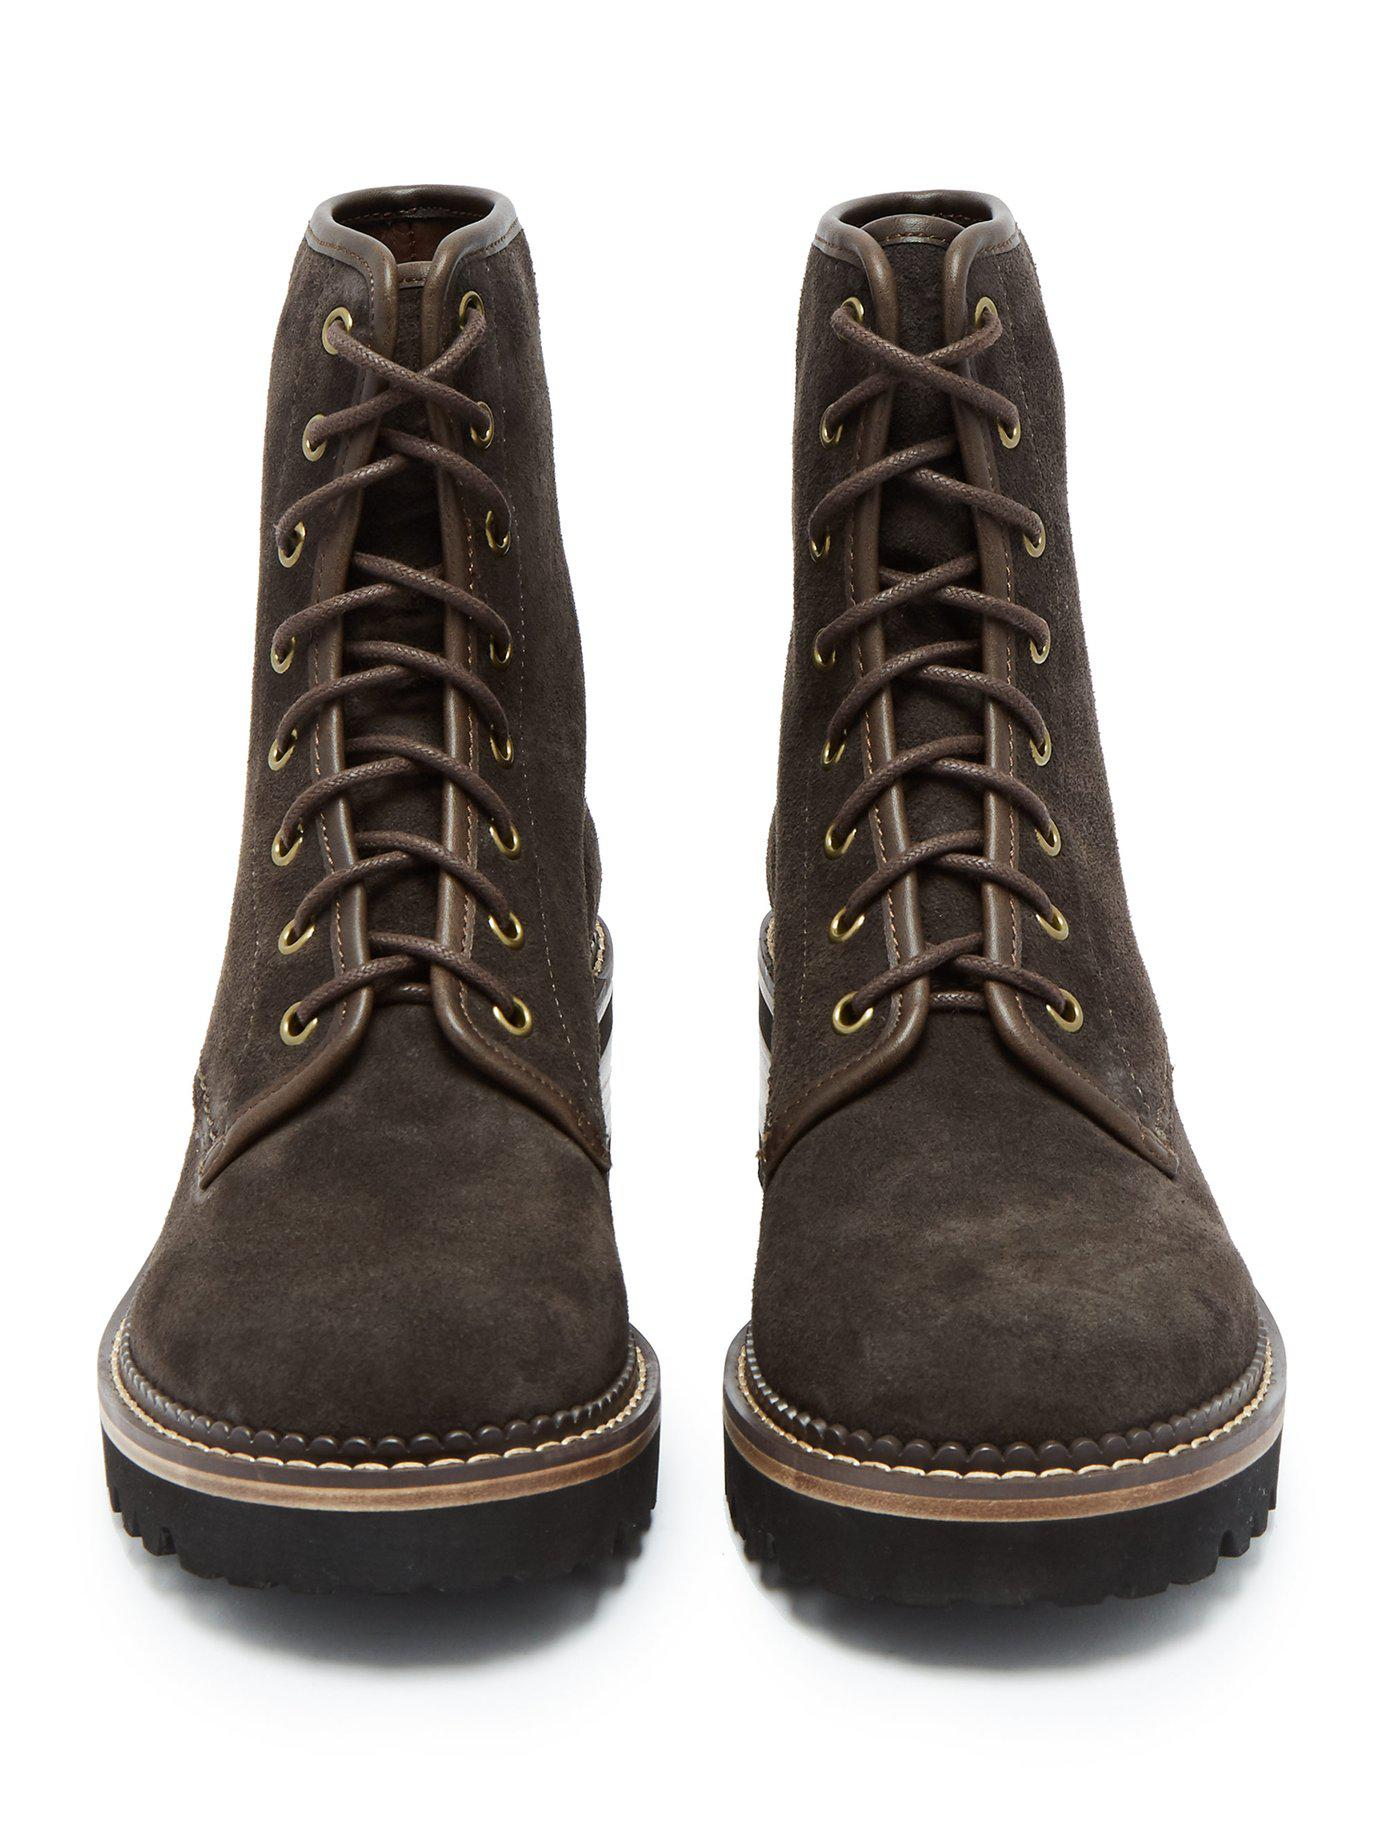 29b7fb5a6c9 See By Chloé Gray Mozart Suede Lace-up Ankle Boots